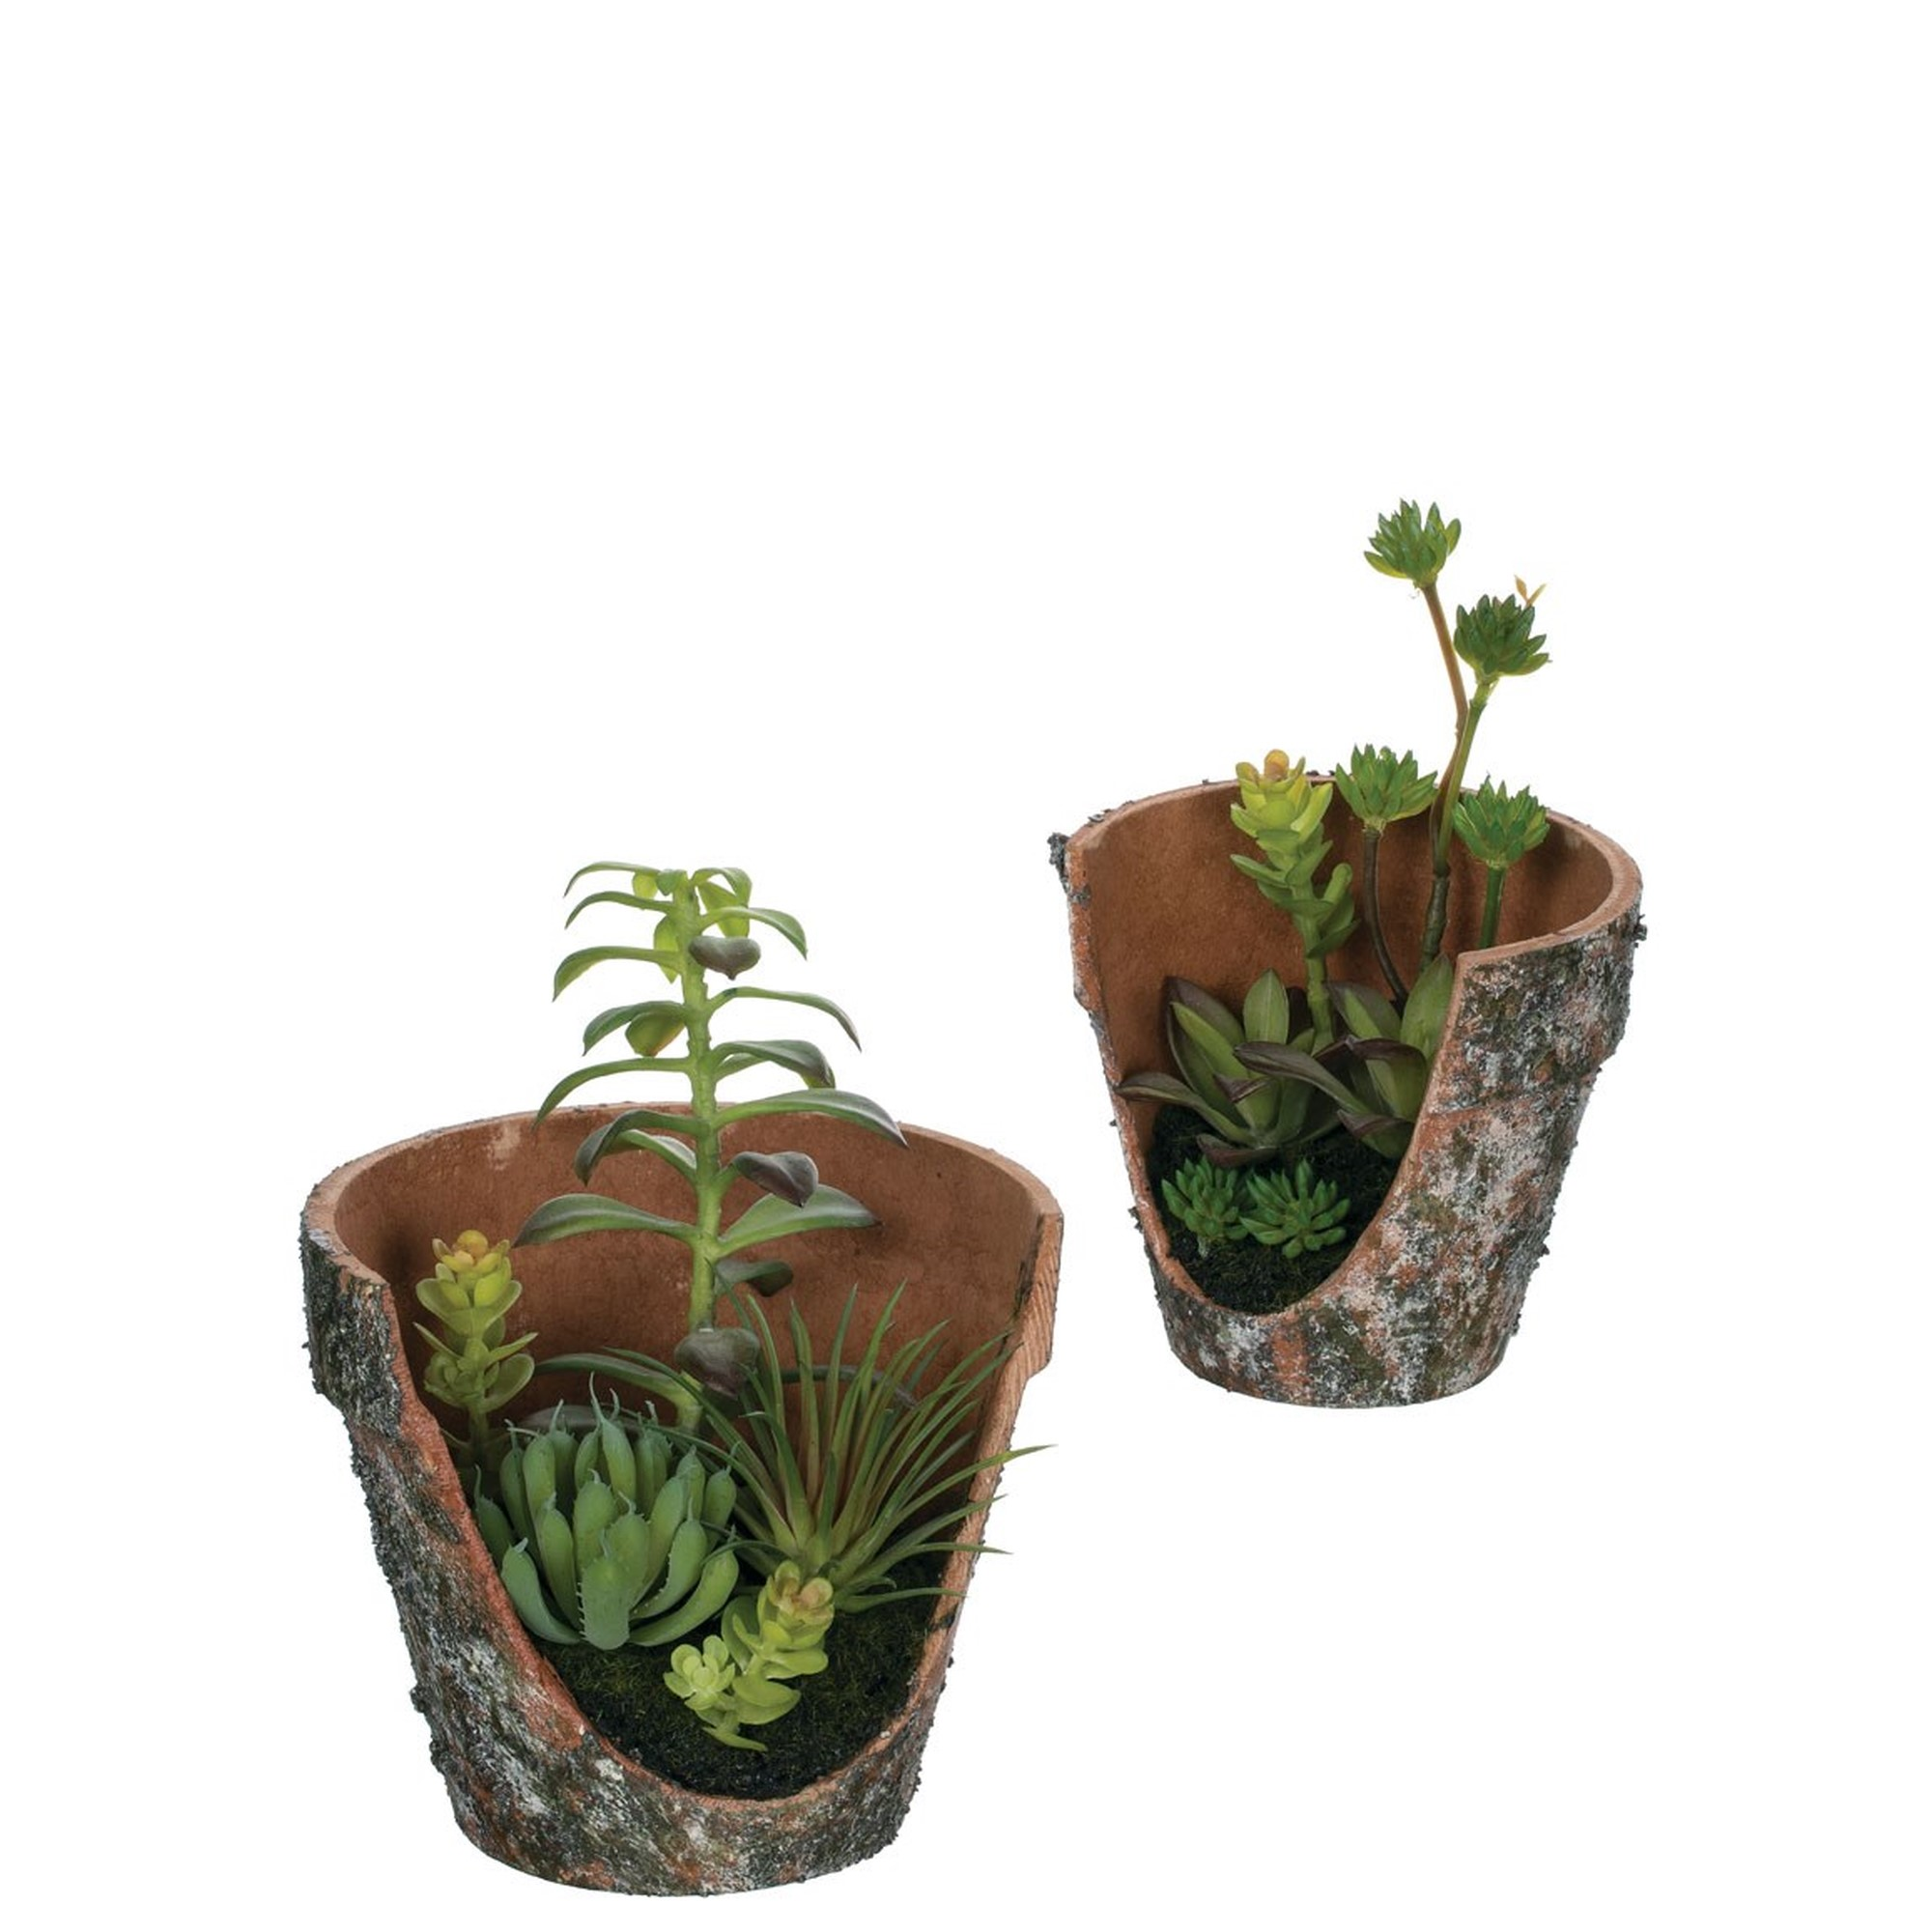 Potted Succulents (2 Sizes), Amanda's House Of Elegance  ($19.95 small, $26.95 large)